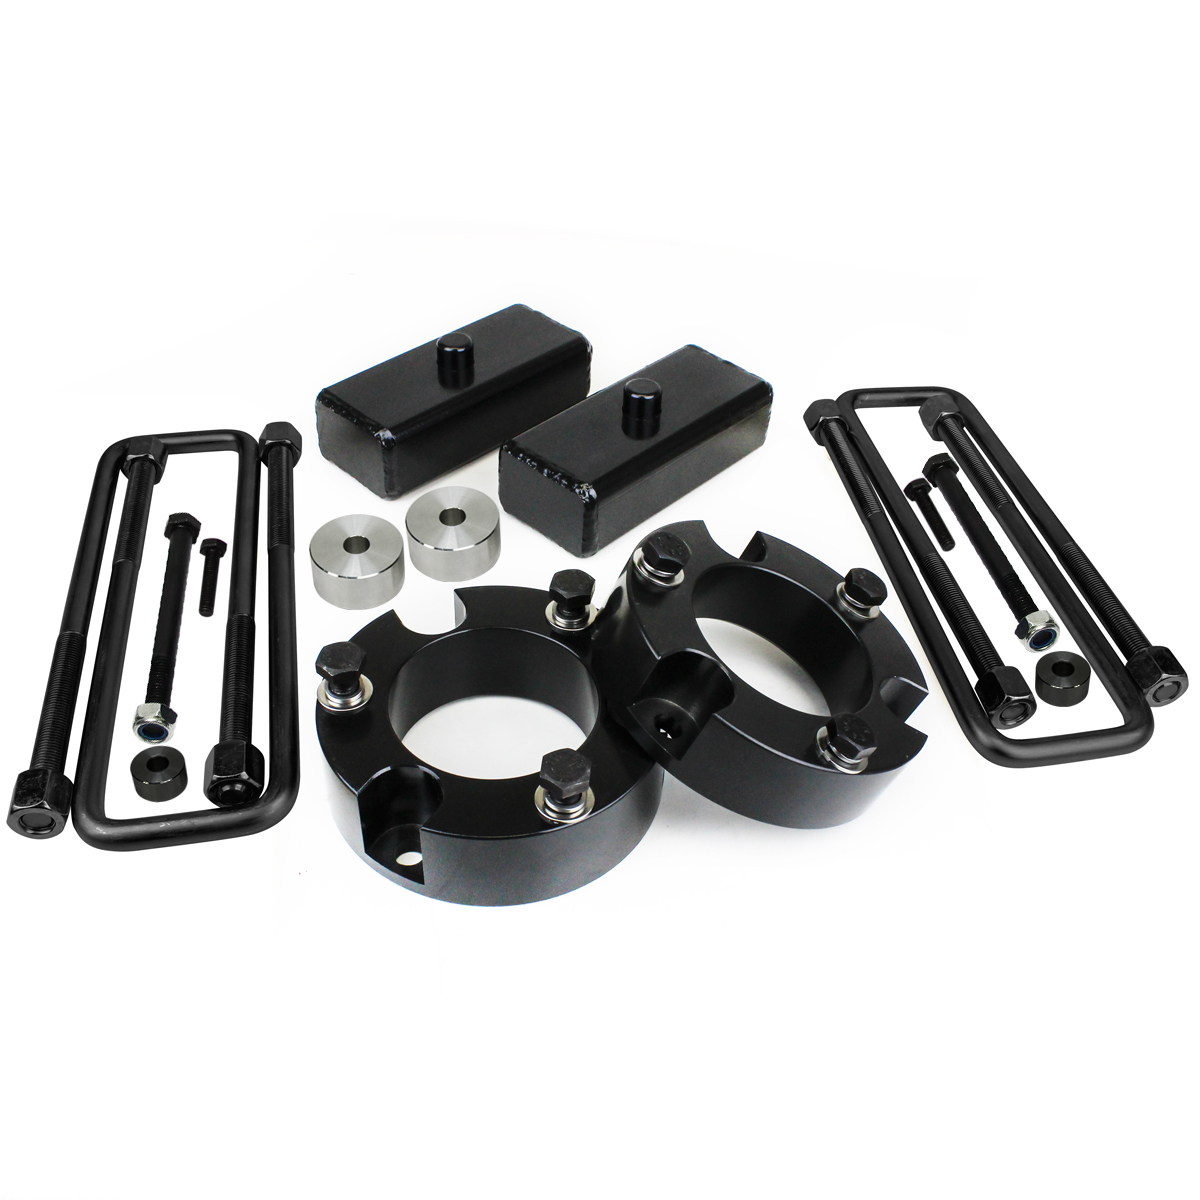 3 Front 2 Rear Full Level Lift Kit Diff Drop For 05 18 Toyota Kits Tacoma Inch Leveling Differential 2005 2006 2007